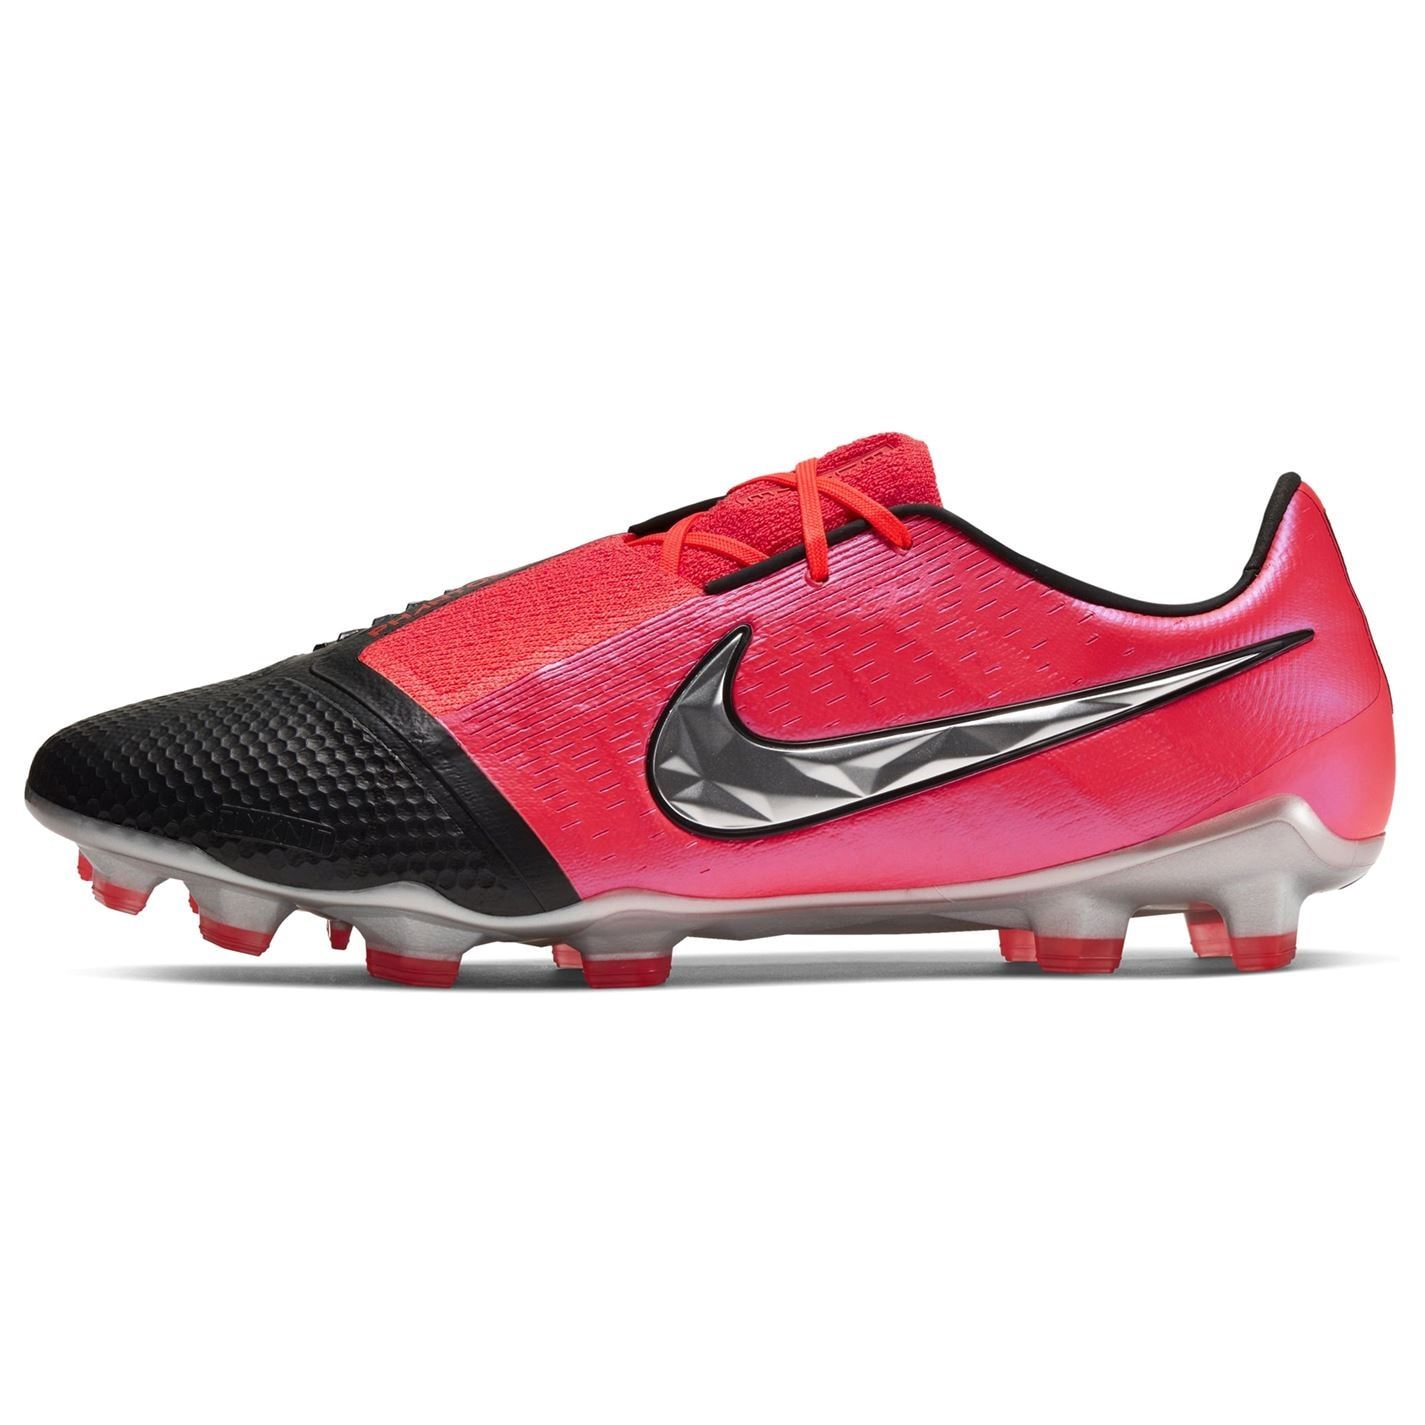 Nike-Phantom-Venom-Elite-Homme-FG-Firm-Ground-Chaussures-De-Football-Chaussures-de-foot-crampons miniature 13